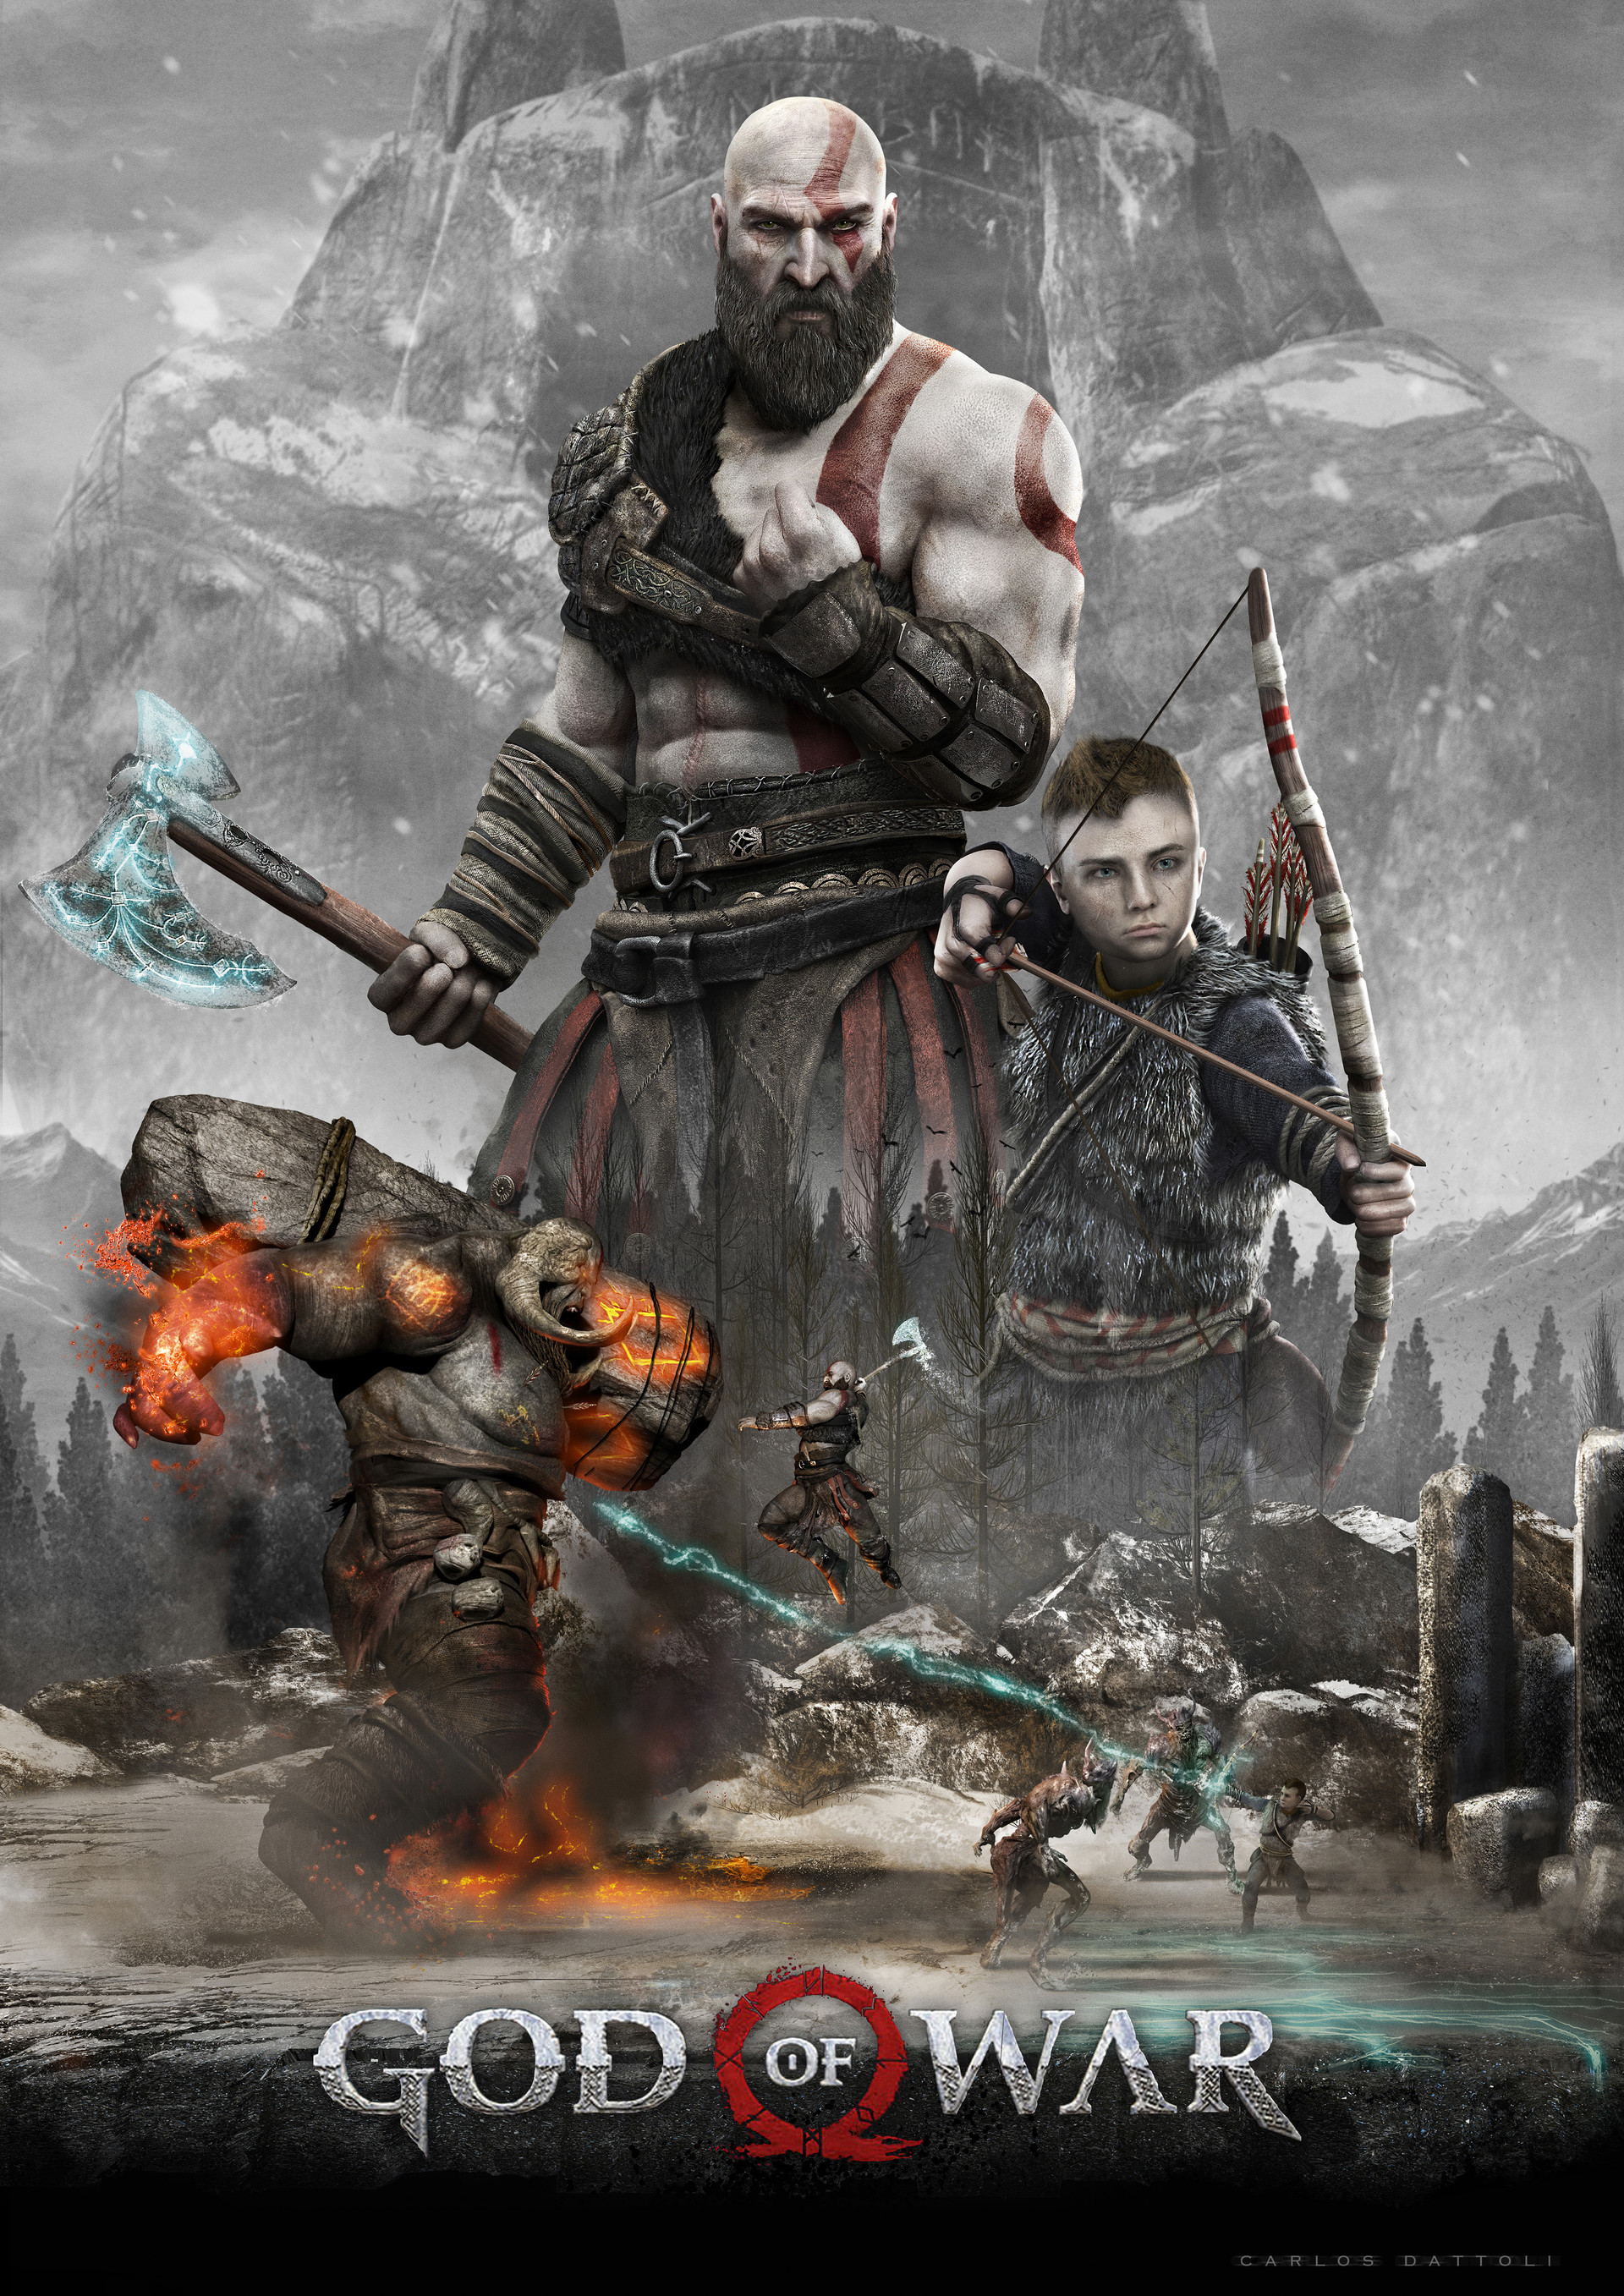 God Of War 4 Poster Wallpaper Kratos In Combat Wallpapers For Tech